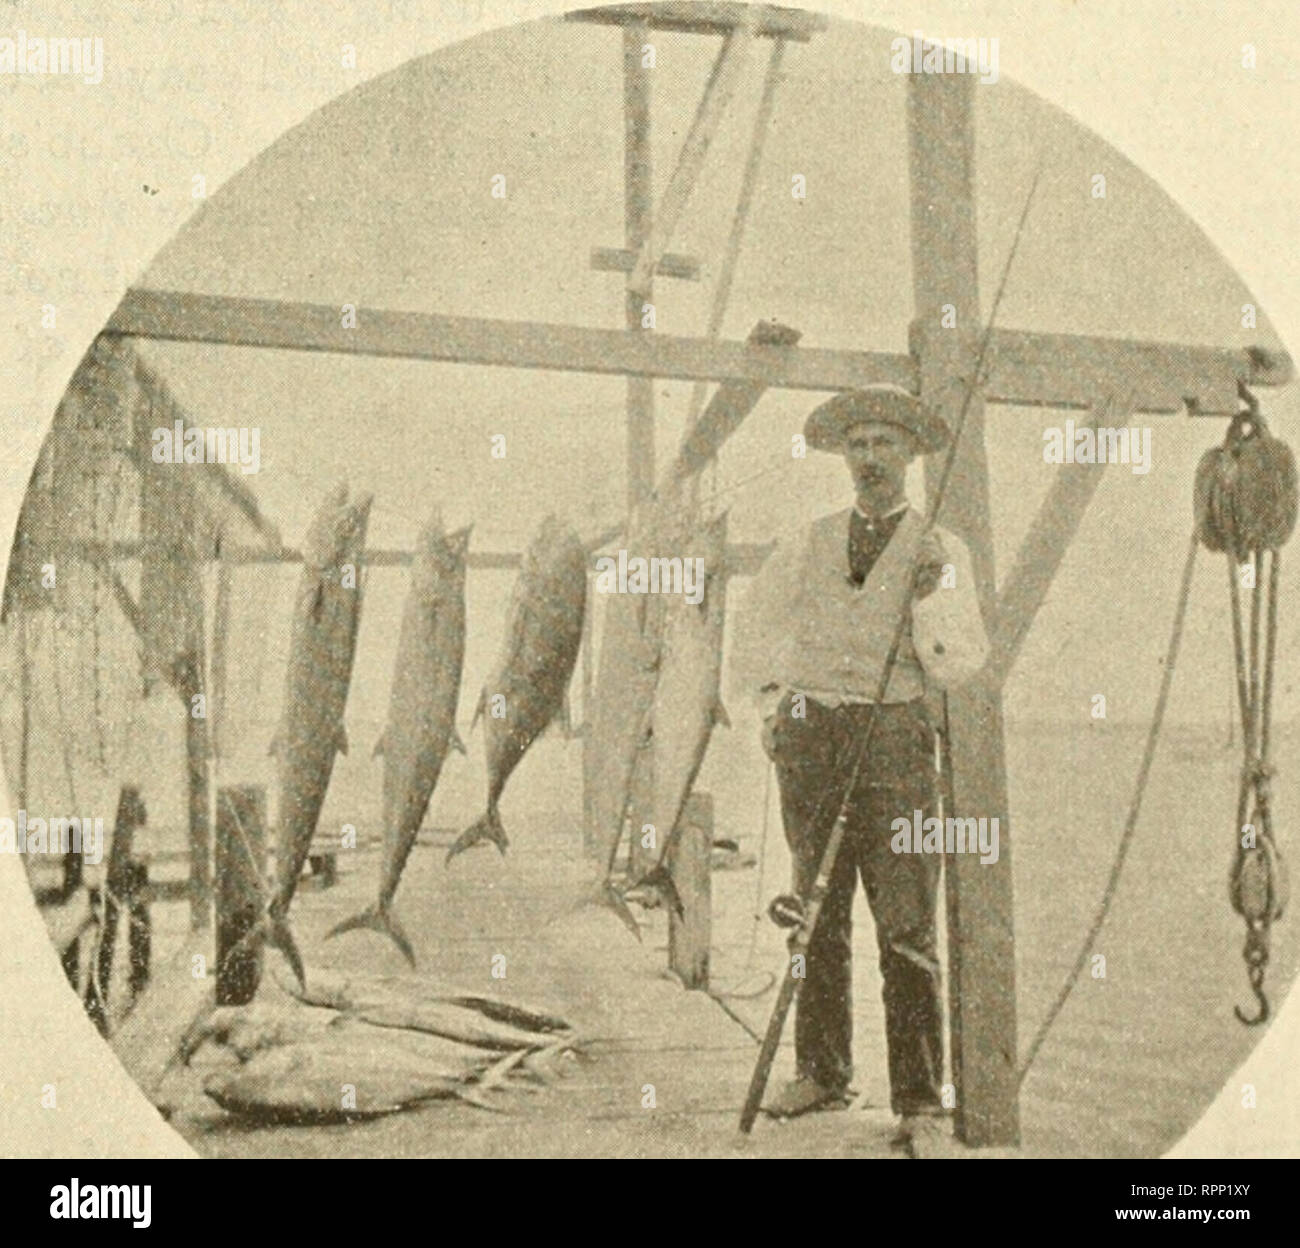 """. The American angler. Fishing. A Pkasant Little (laine at Aransas Pass. 347 and fig'litaia.g'; and indeed, had he the jumping' inclinations of the tarpon when the hook is felt, the sport would be pref- erable to that of the sulking- tarpon. And such a bolt of shining iridescence, the dark green lining of the back form- ing a beautiful contrast to the changing rainbow colors of the sides! Early one morning in Jul}"""", I was awakened by mine host of the Seaside calling out in a loud voice: ''Mr. J , Mr. J , better get up; the pass is full of king and jack- fish; Ned and Joe have been out and - Stock Image"""